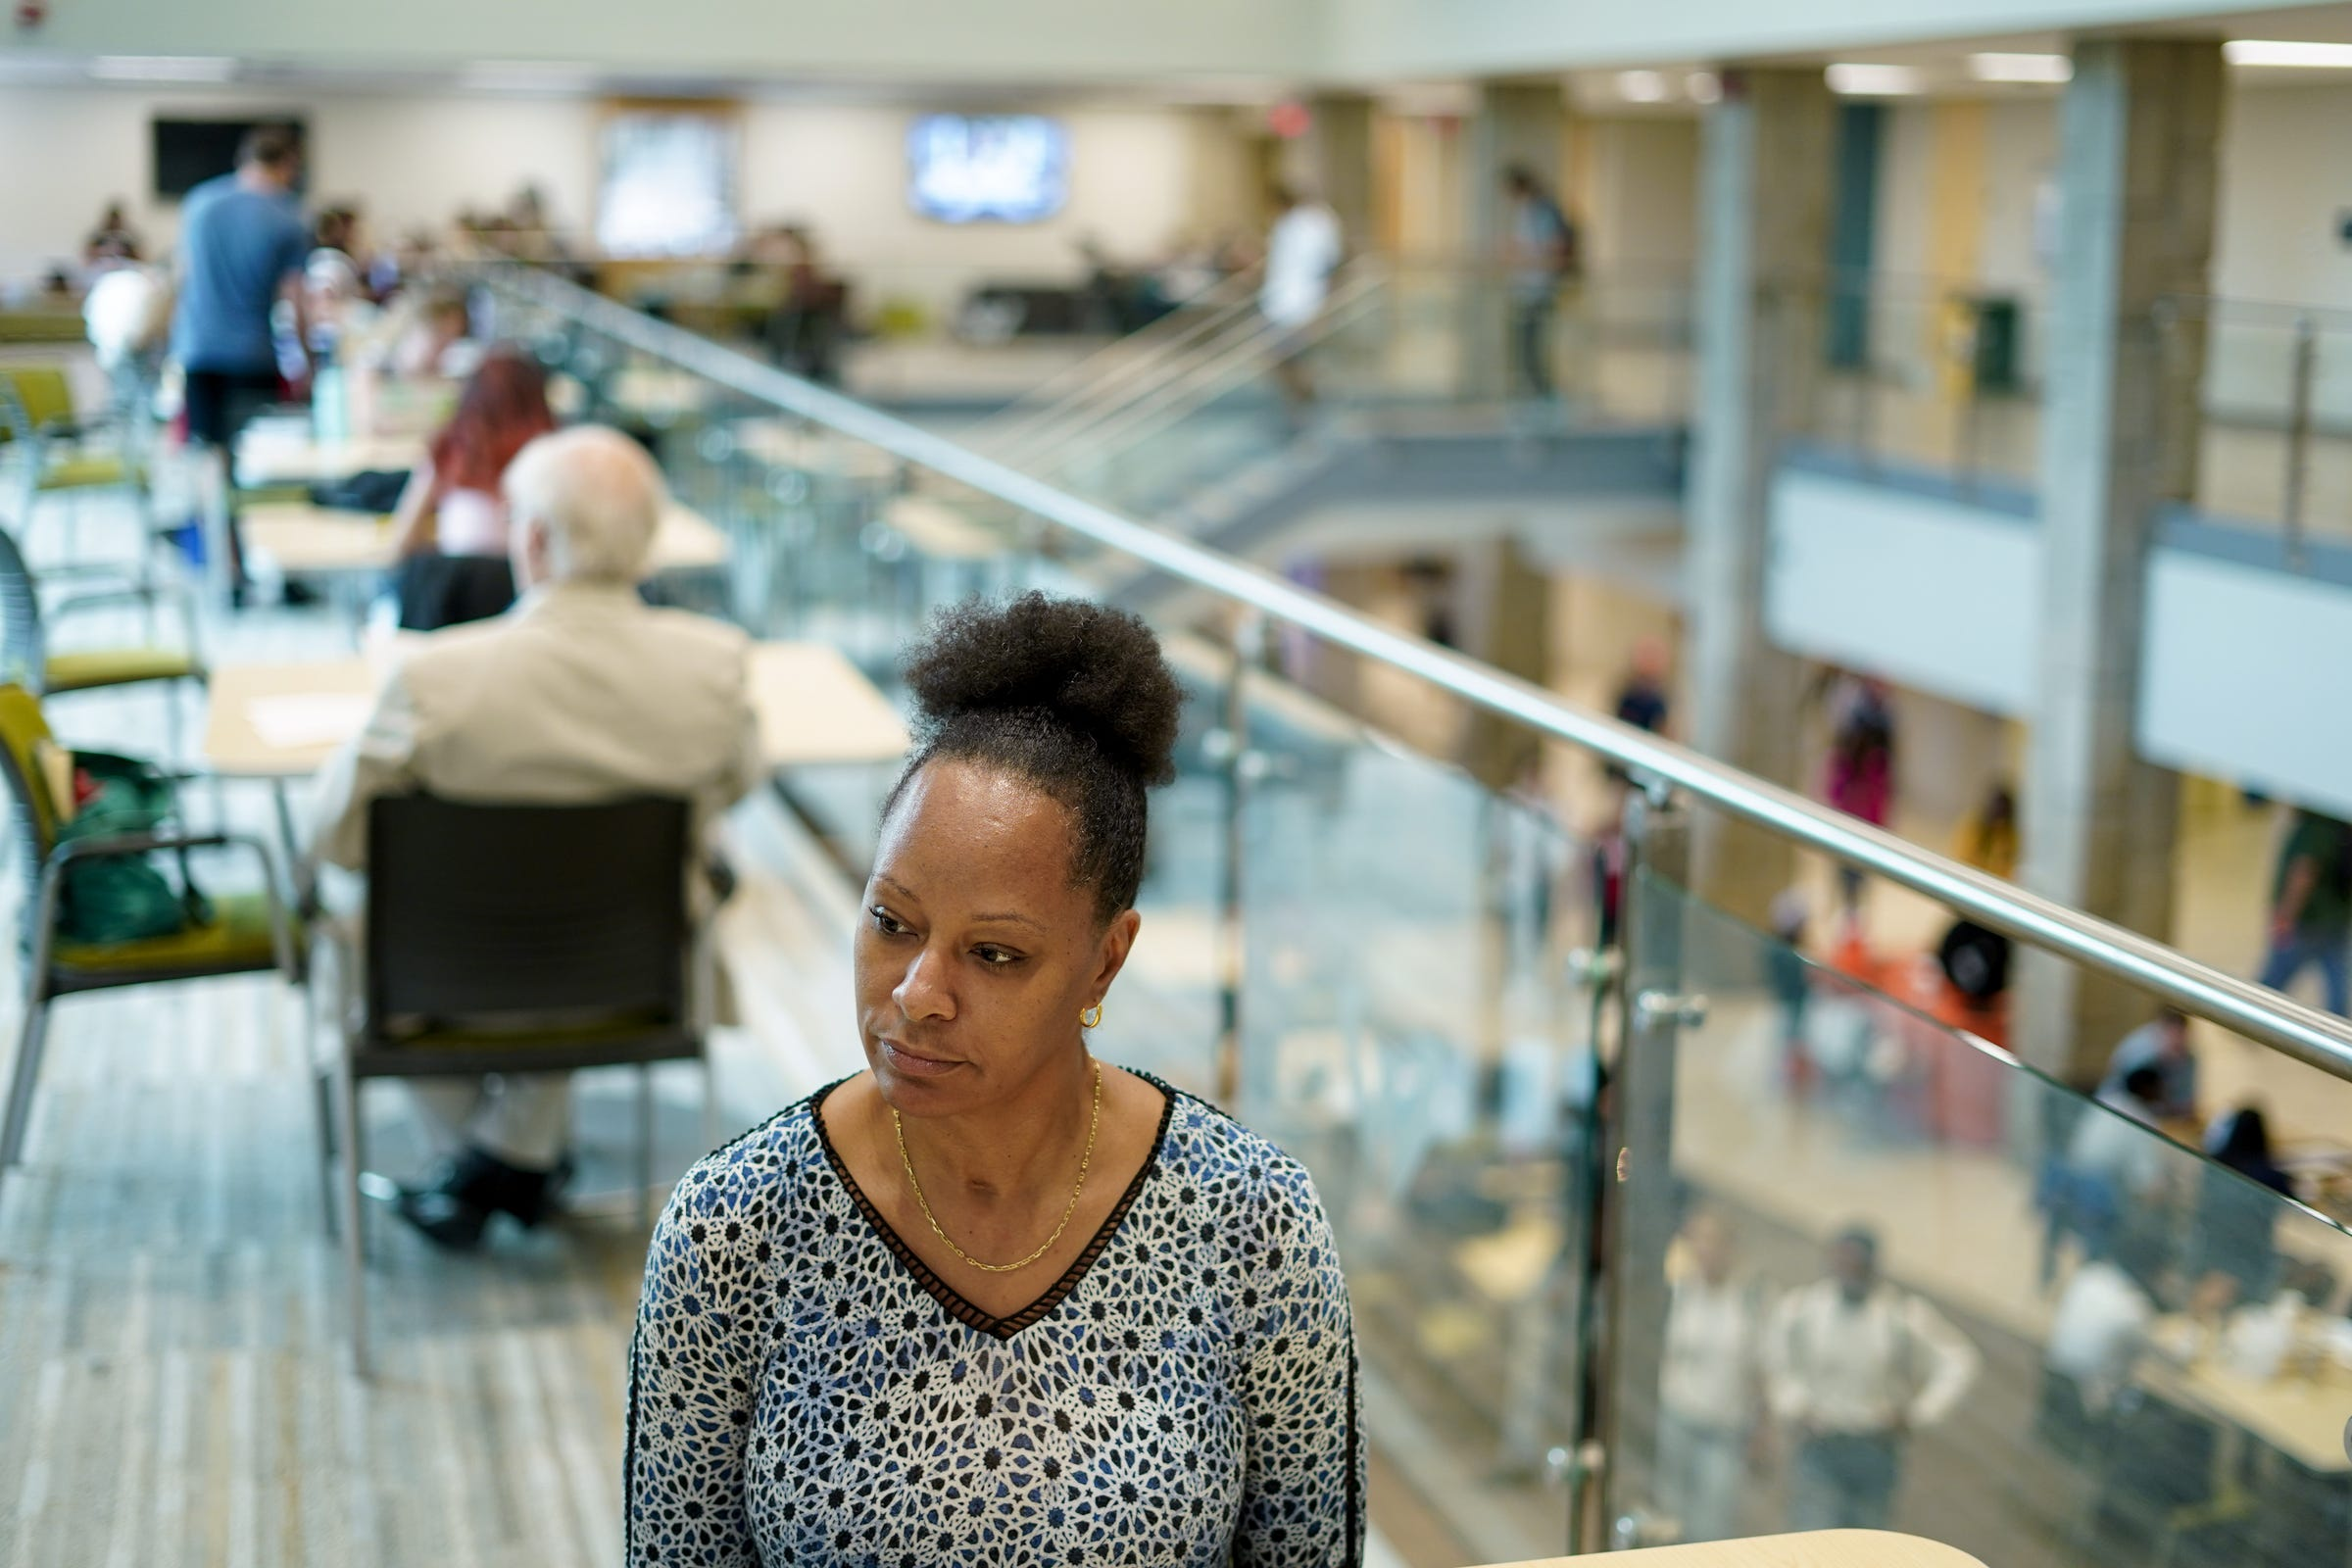 Wayne State University student Staci Irvin of Detroit talks about her concerns with student loans at the Wayne State University Student Center in Detroit on Wednesday, Sept. 4, 2019.